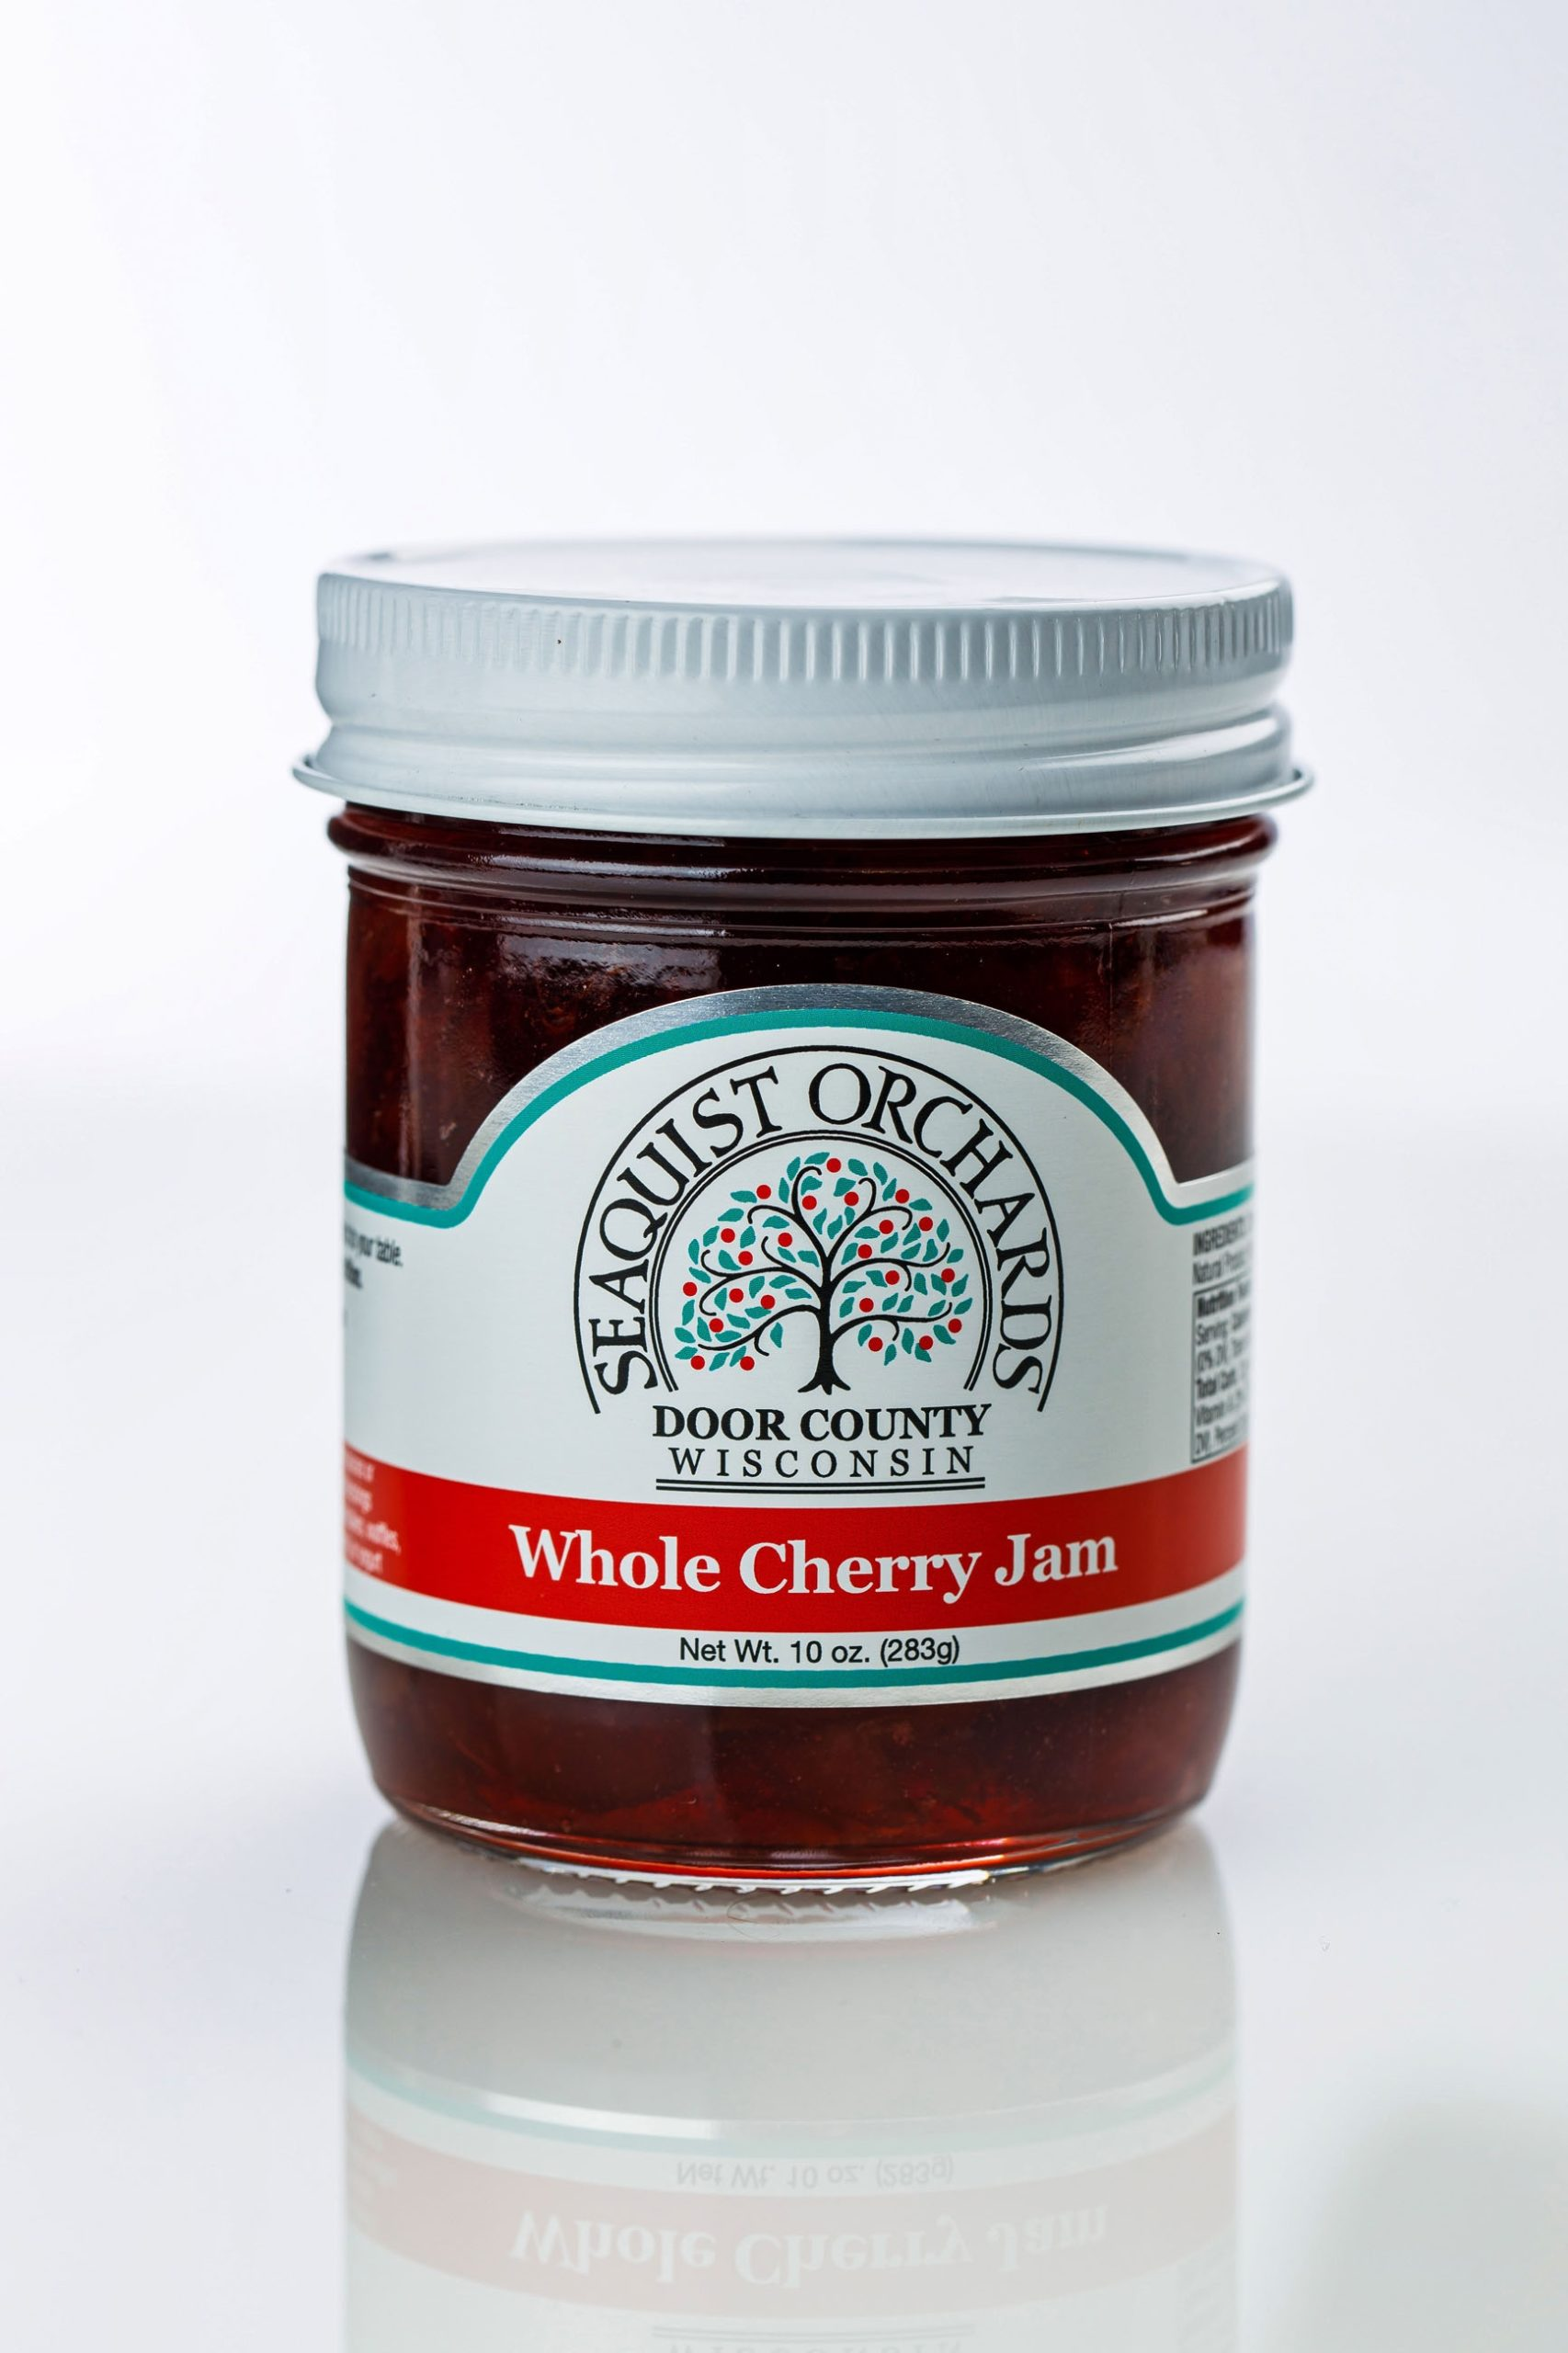 Whole Cherry Jam -Seaquist-0